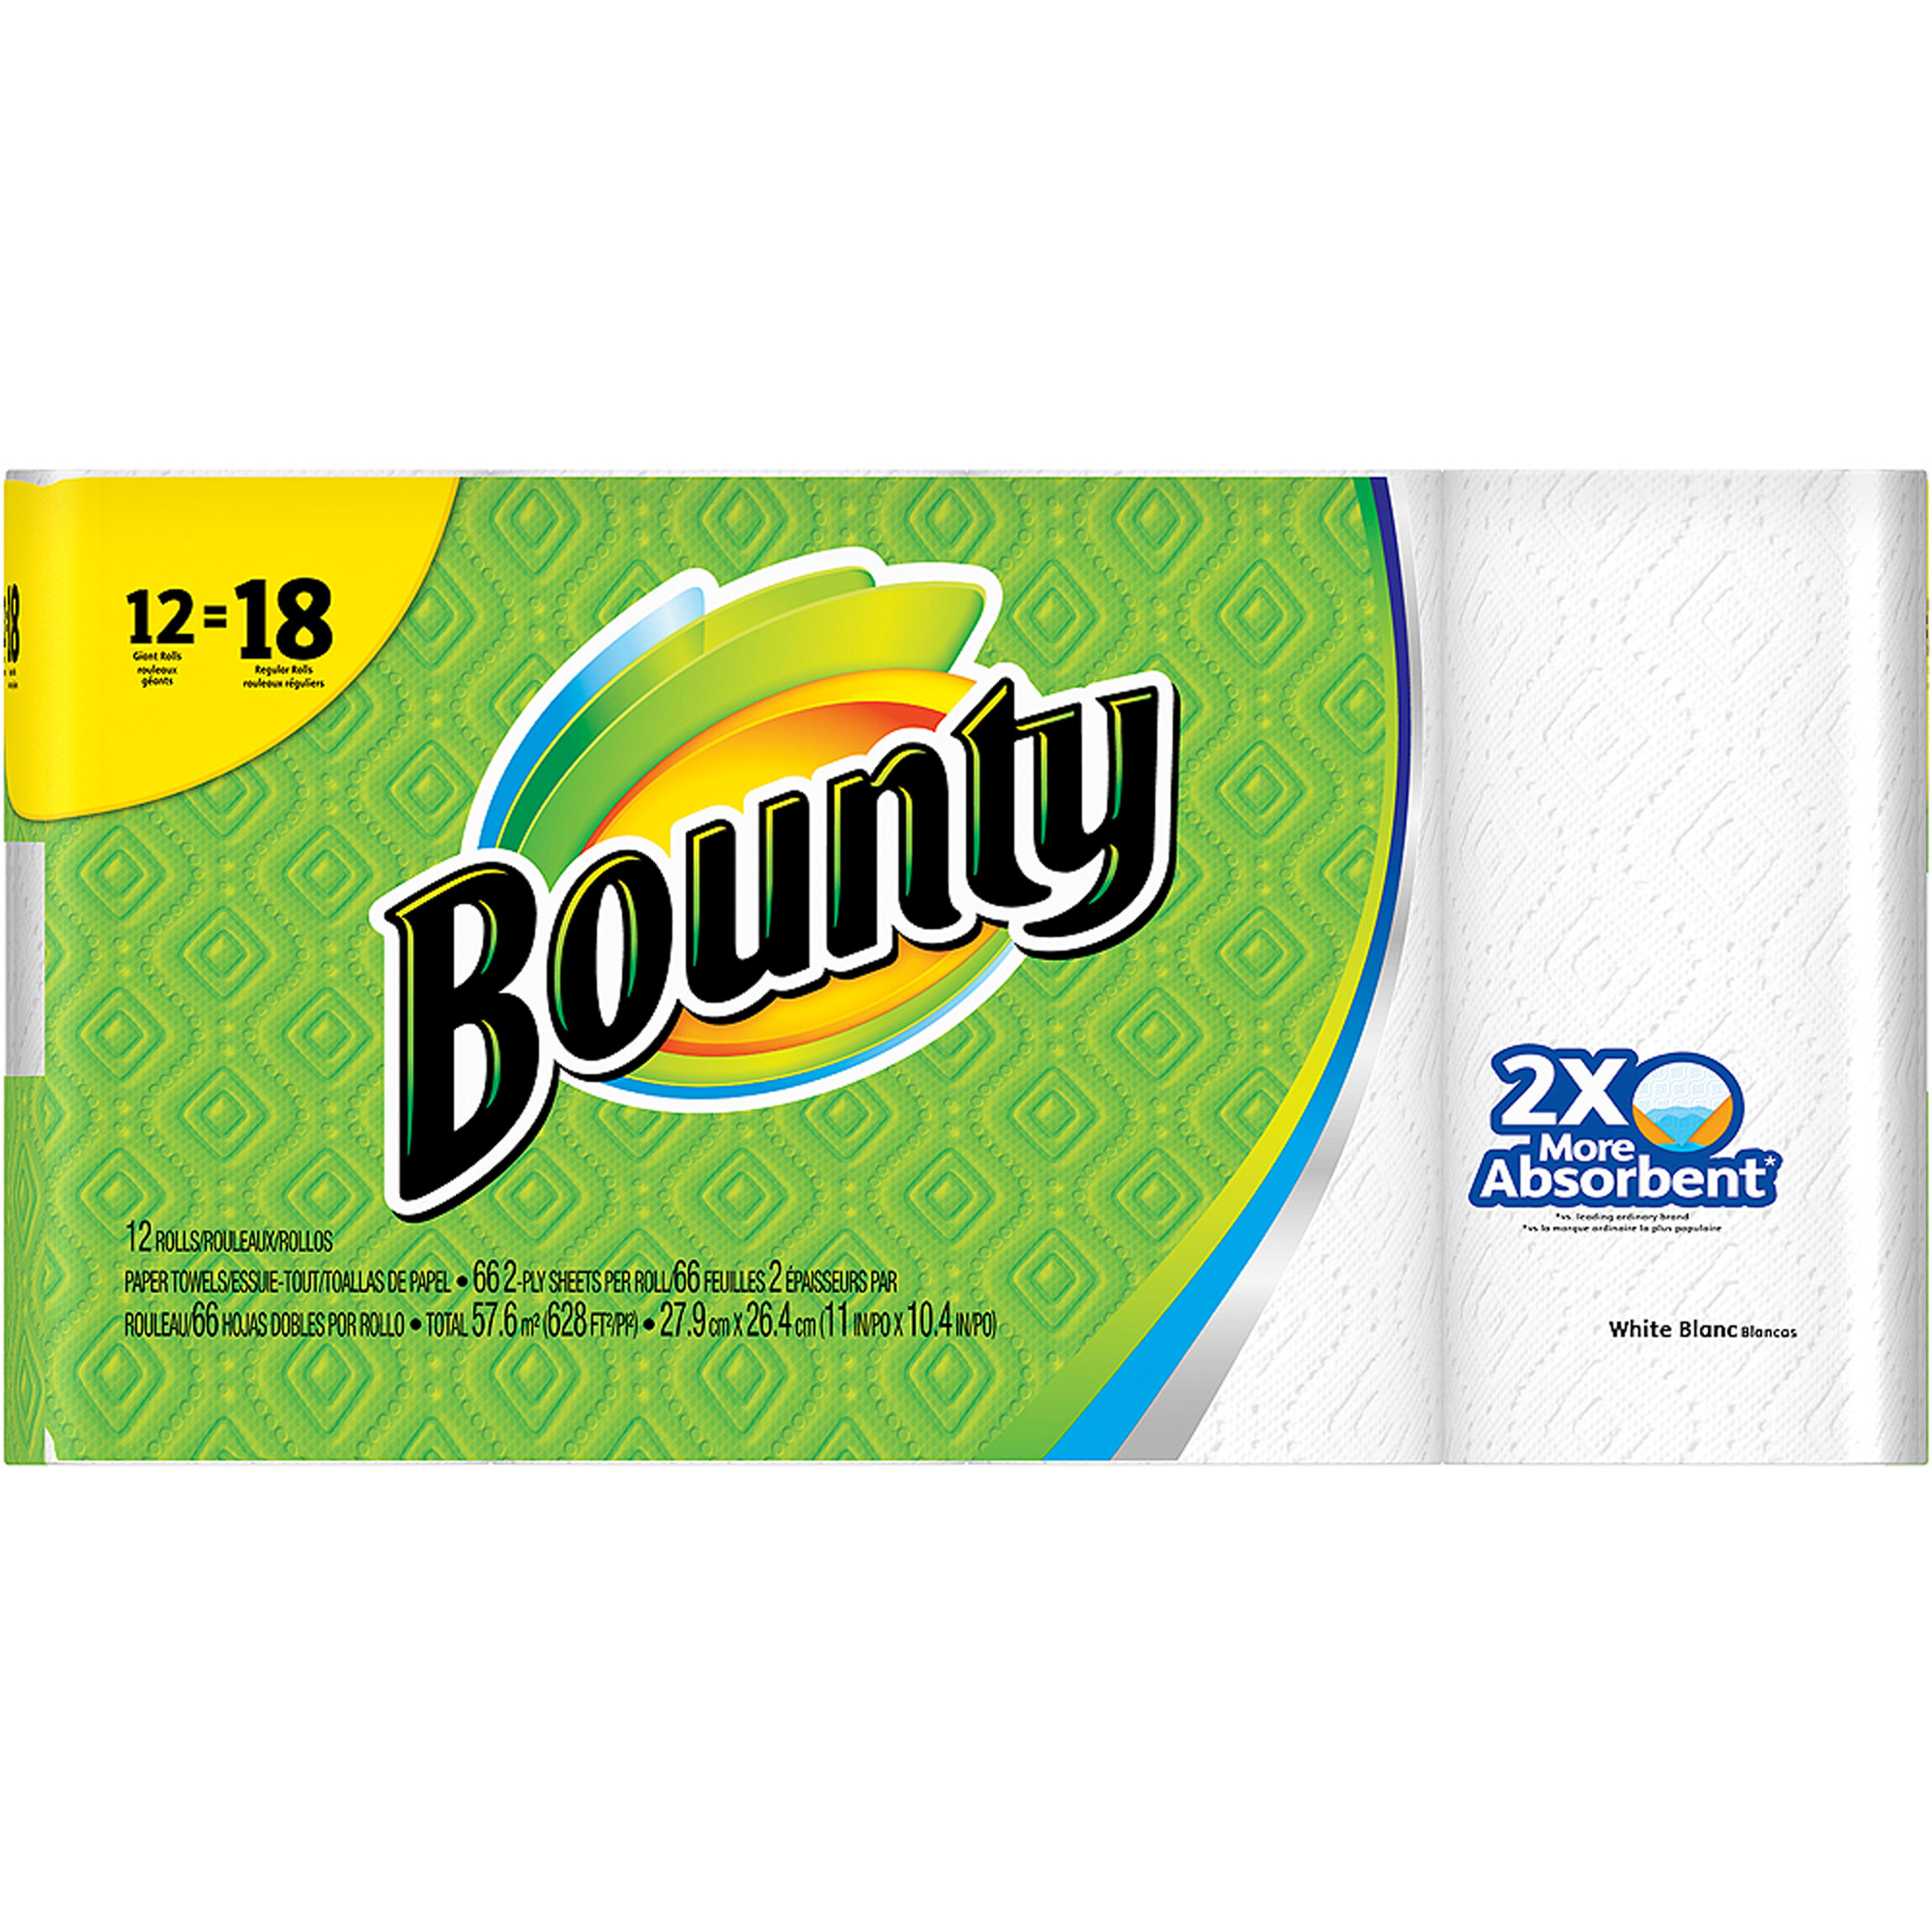 Paper towel deals january 2018